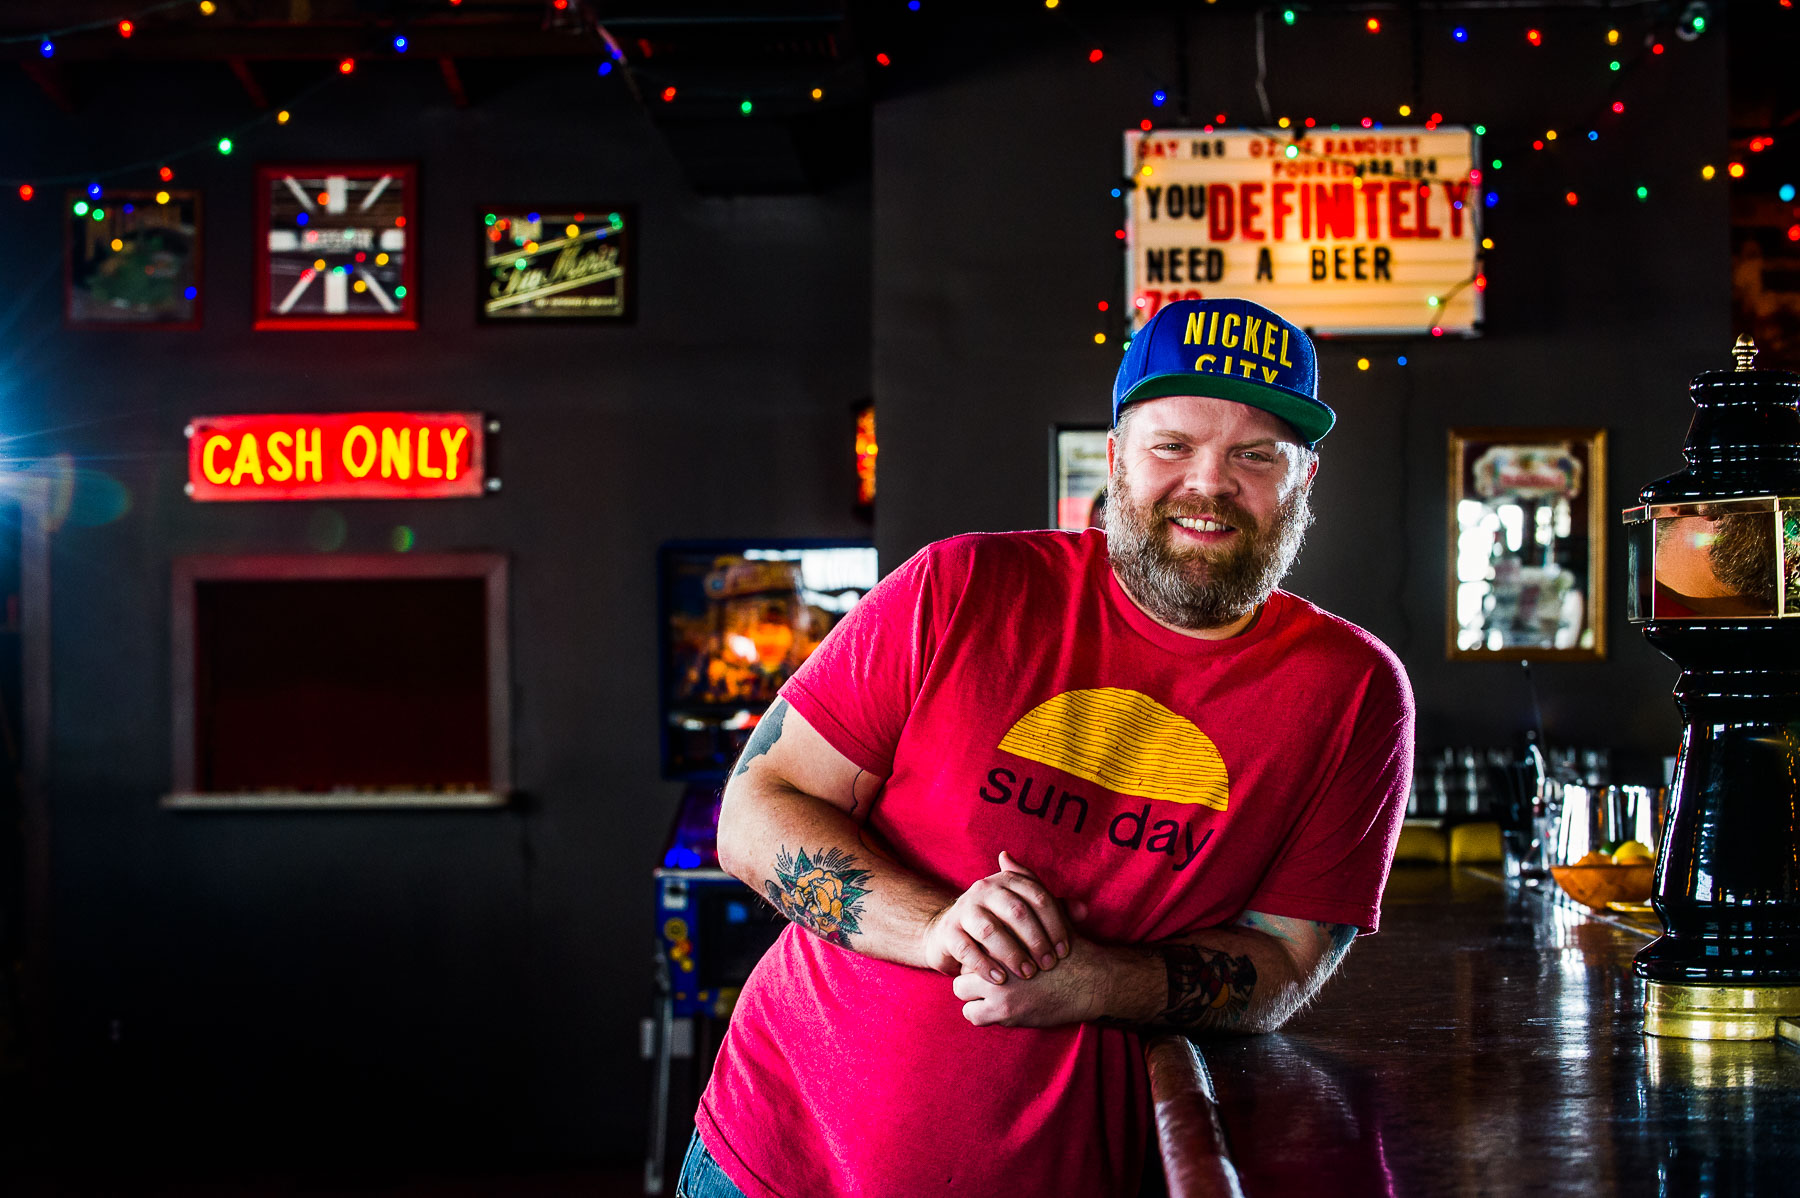 aaron-ingrao-keepers-of-the-craft-cocktails-across-america-nickel-city-austin-drink